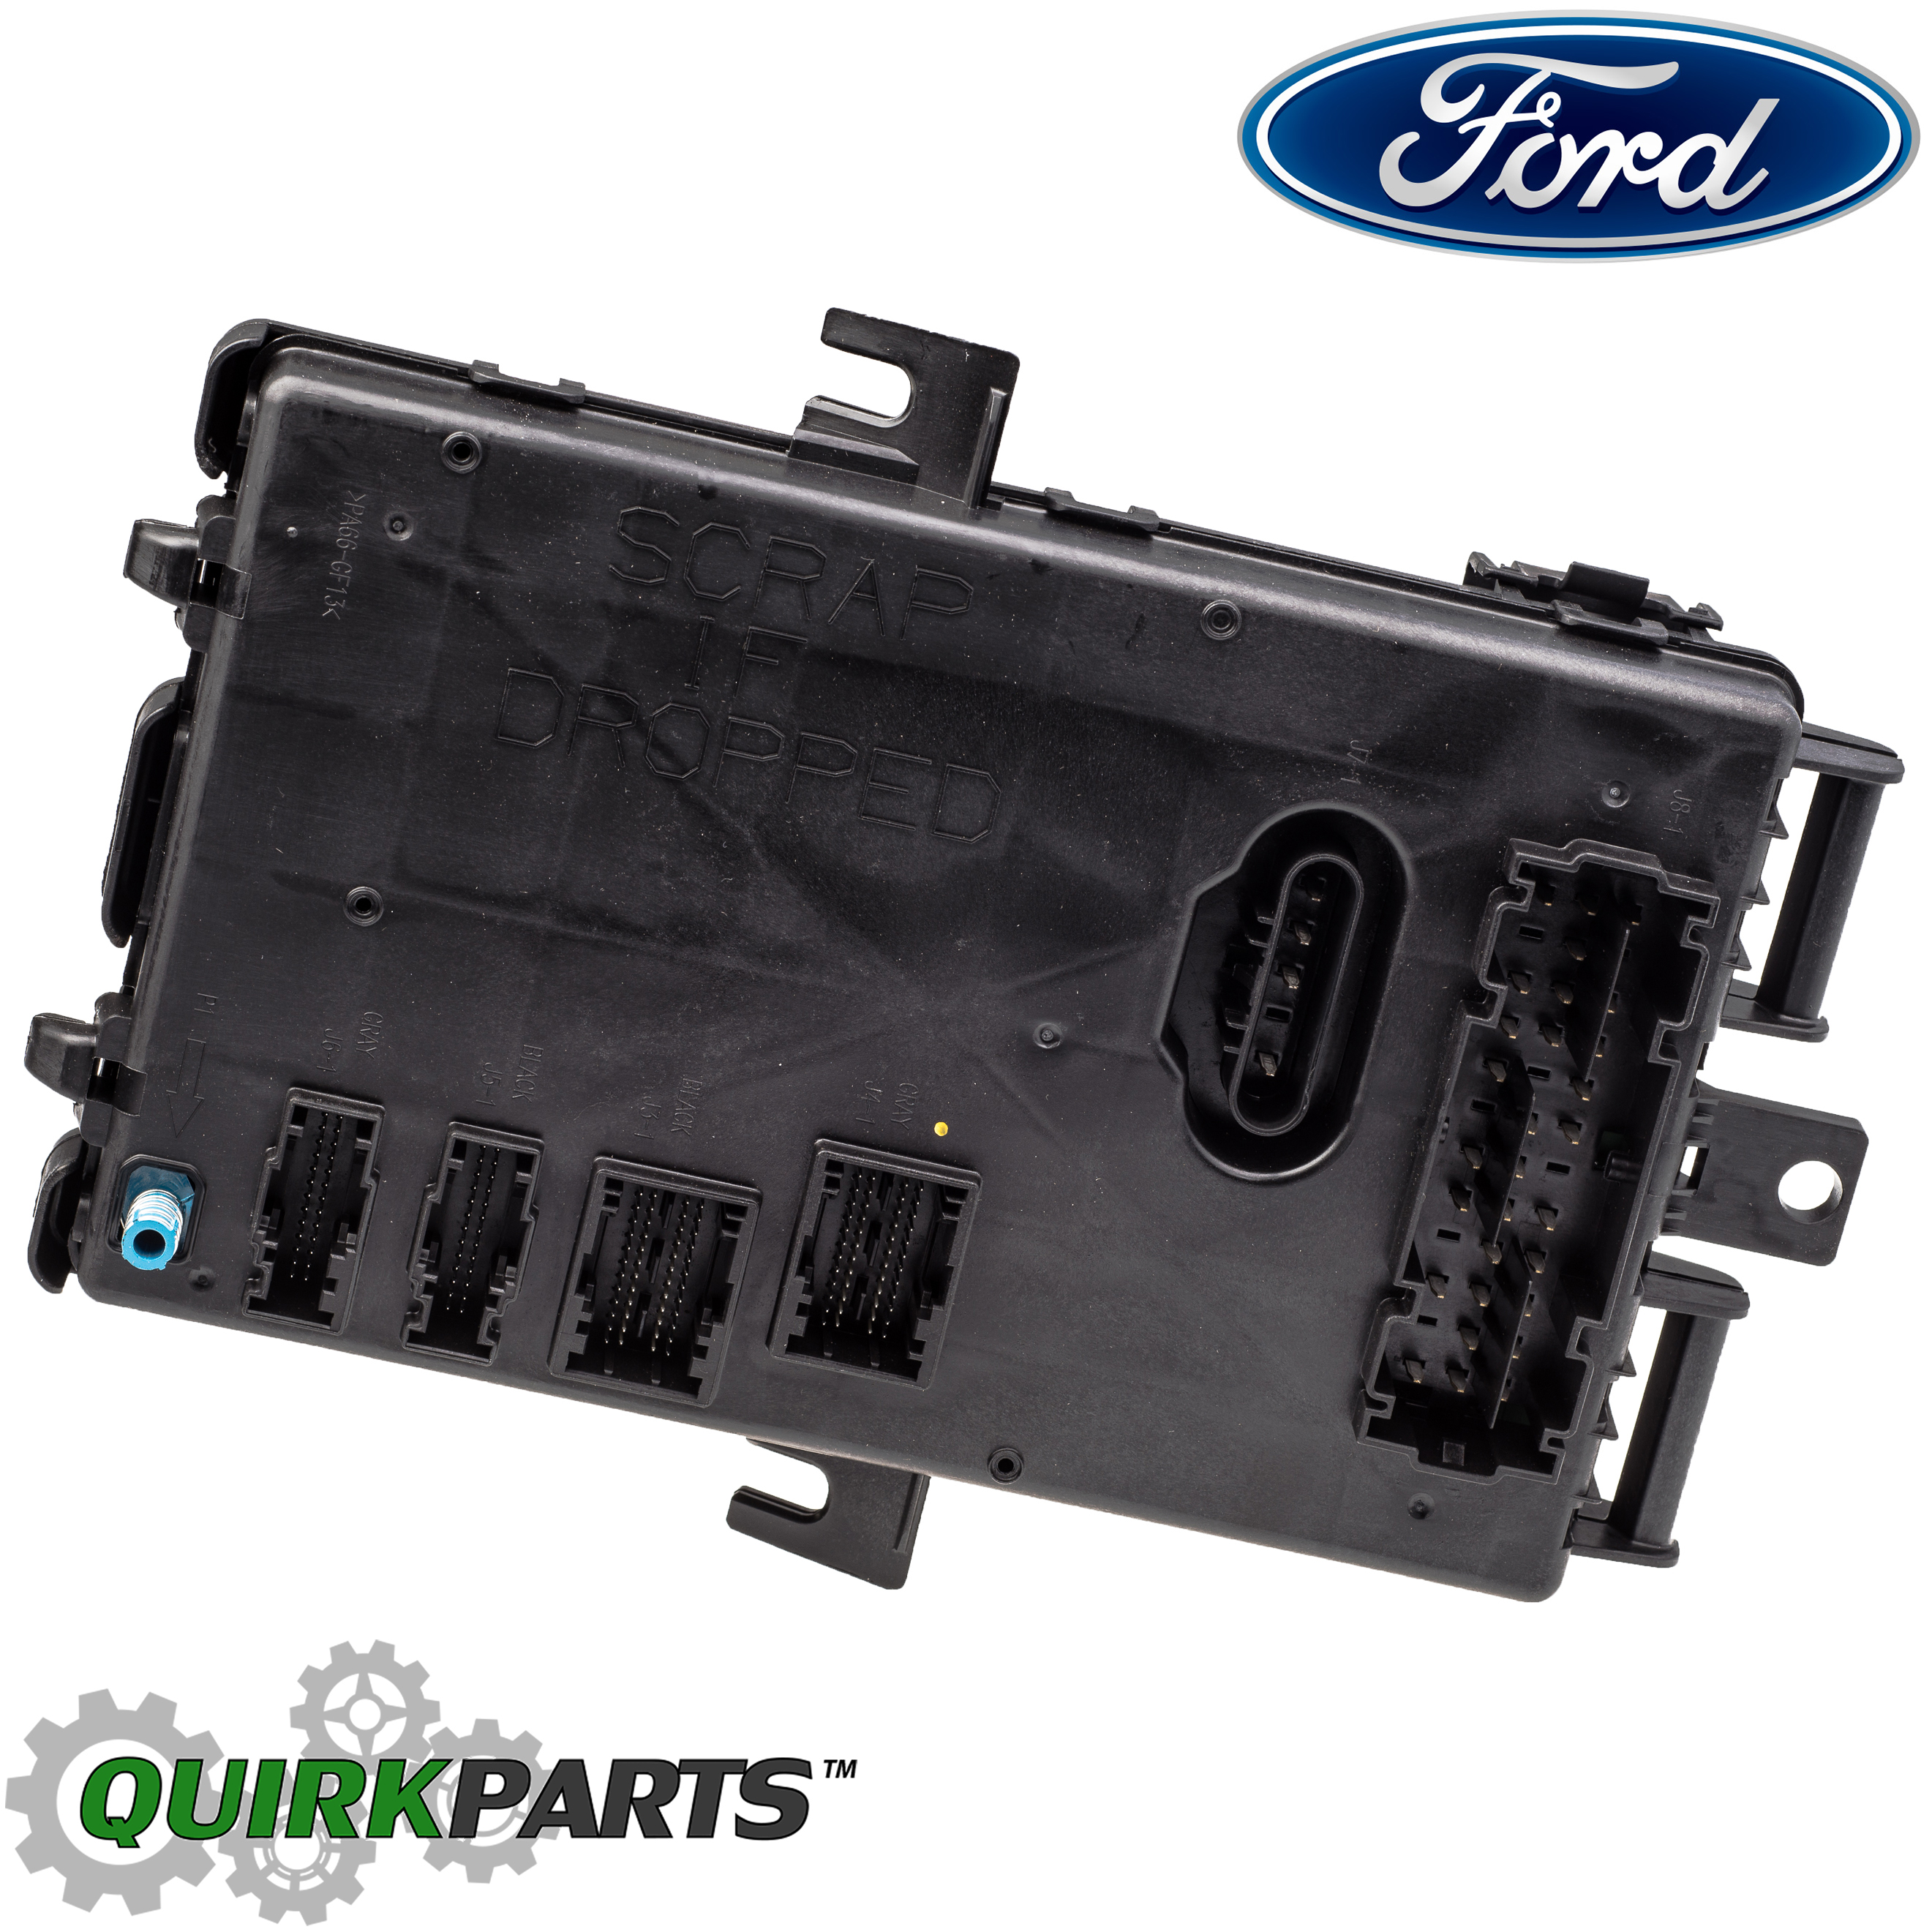 2005 2006 Ford Mustang Smart Junction Box Keyless Entry Alarm Fuse Control Module Oem 5r3z 15604 Dc Quirk Parts